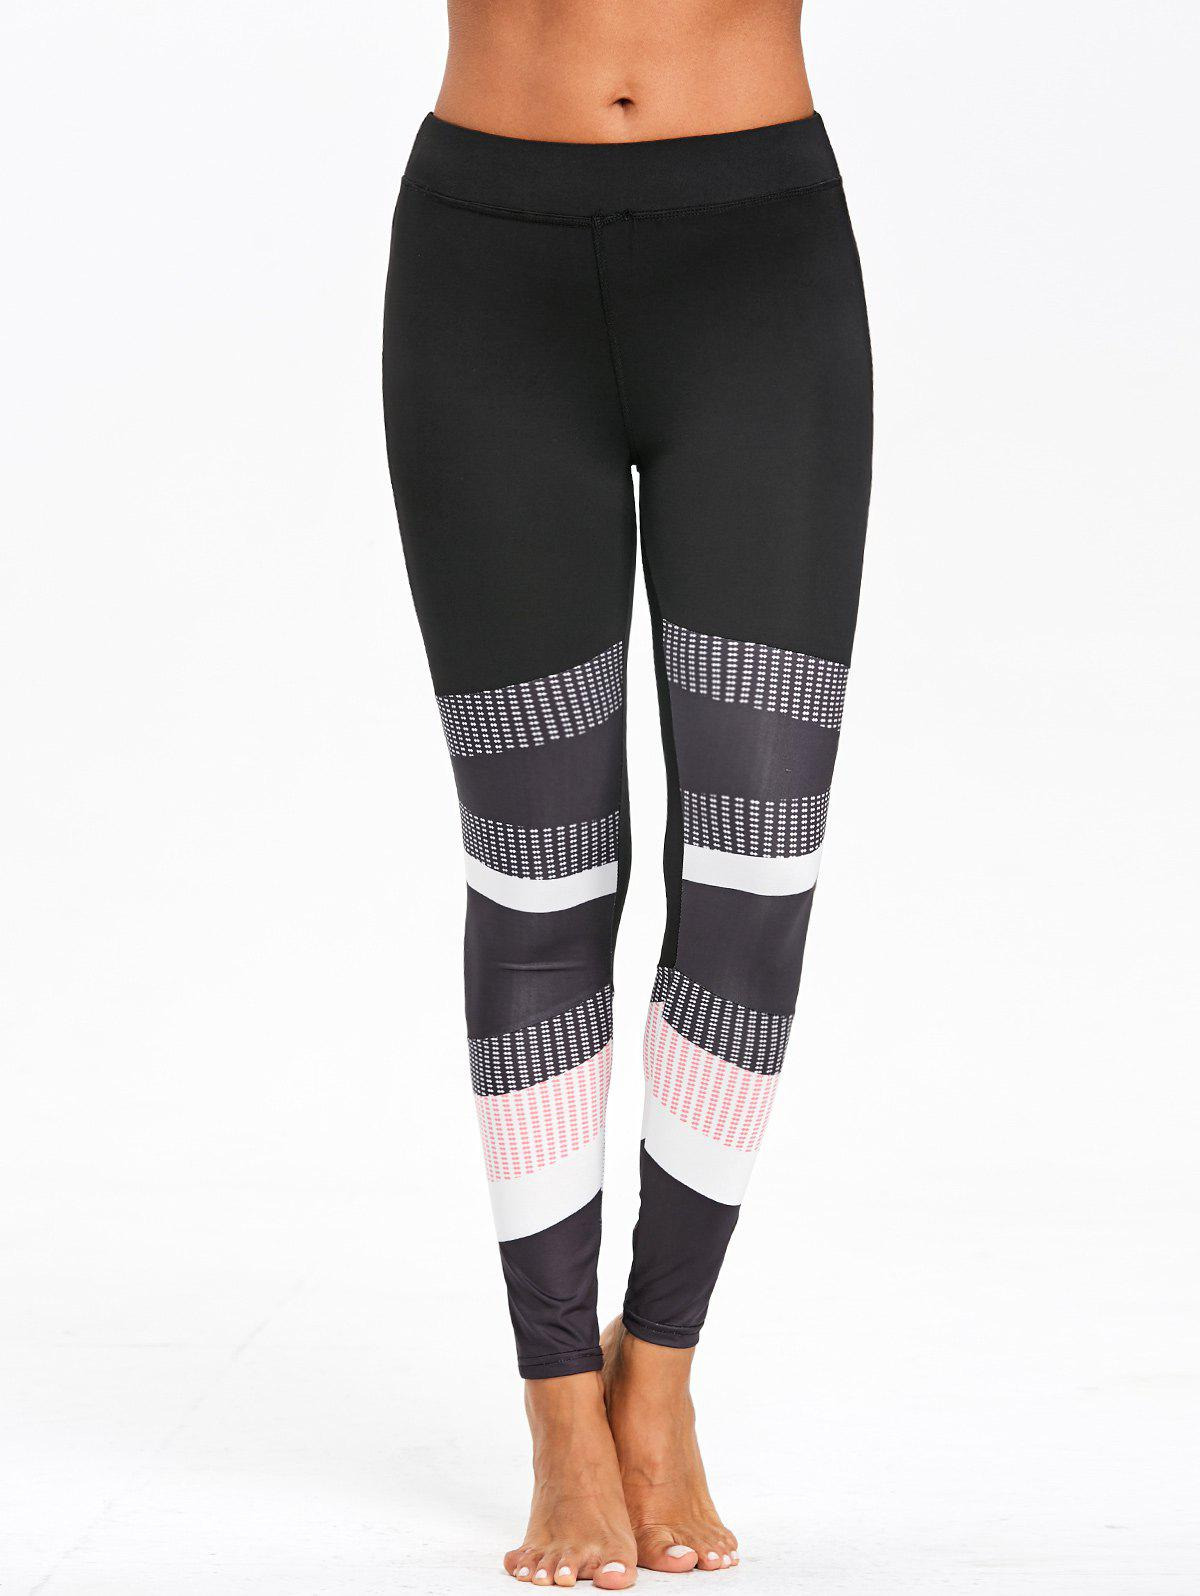 Skinny Graphic Color Block Leggings - COLORMIX S